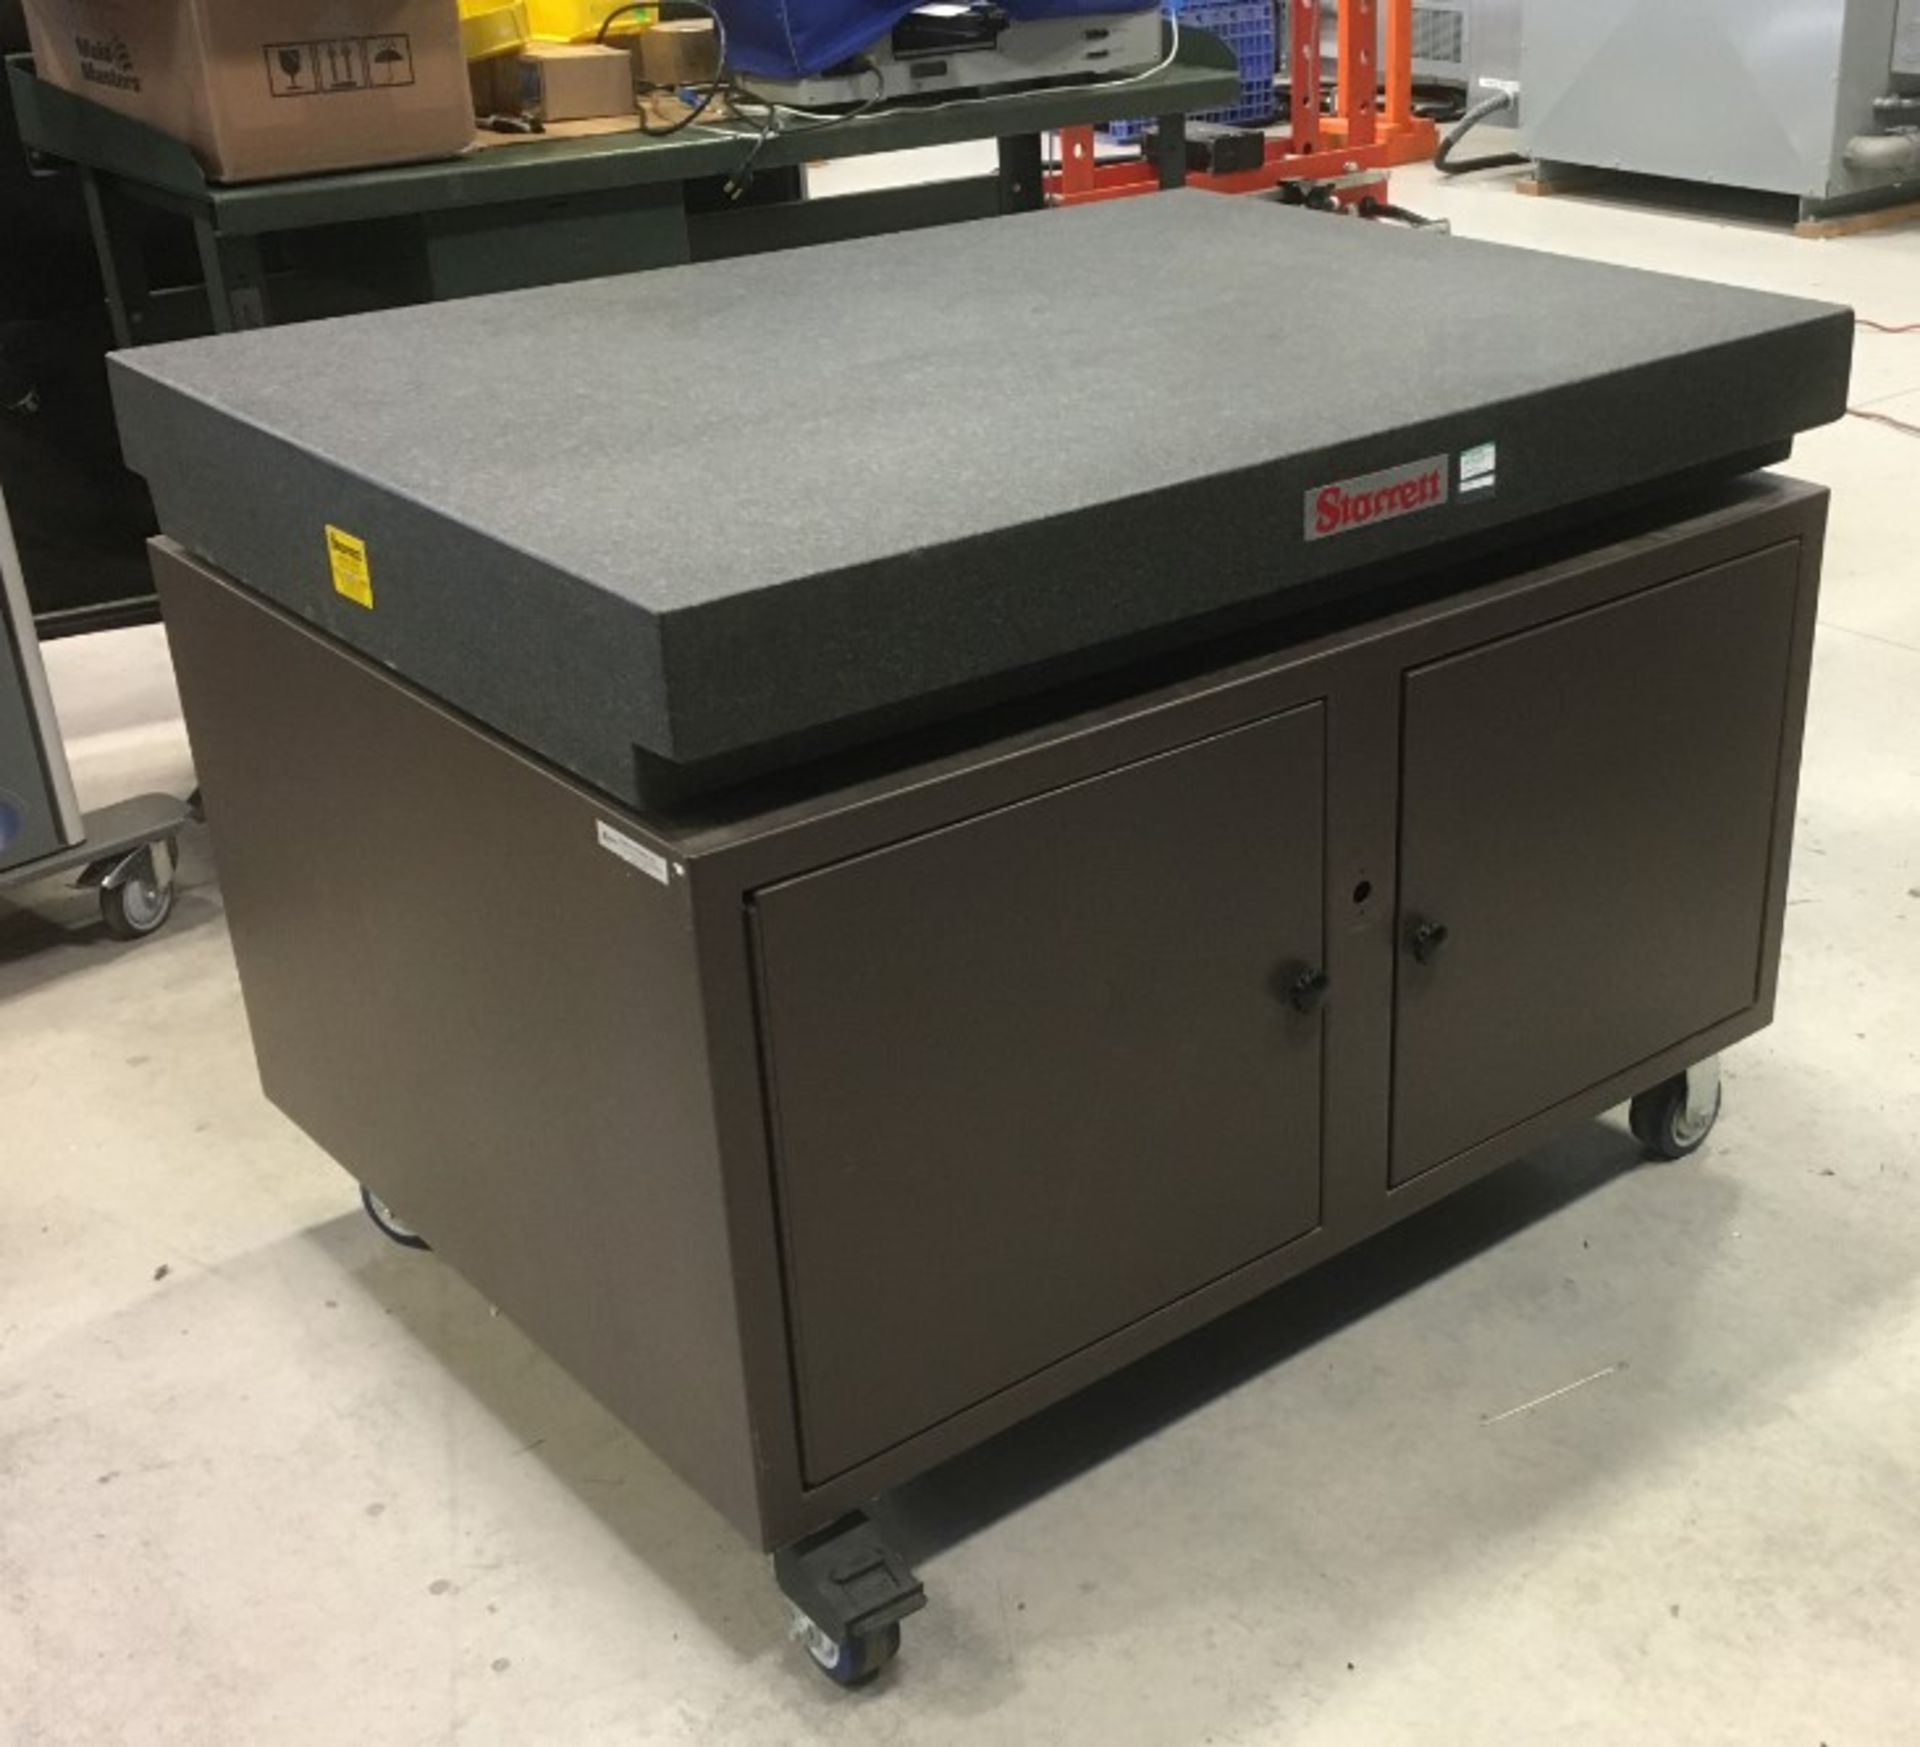 STARRETT 48ÓX36ÓX35ÓH GRANITE SURFACE PLATE WITH ROLLING STAND [RIGGING FEES FOR LOT# 10A - $50